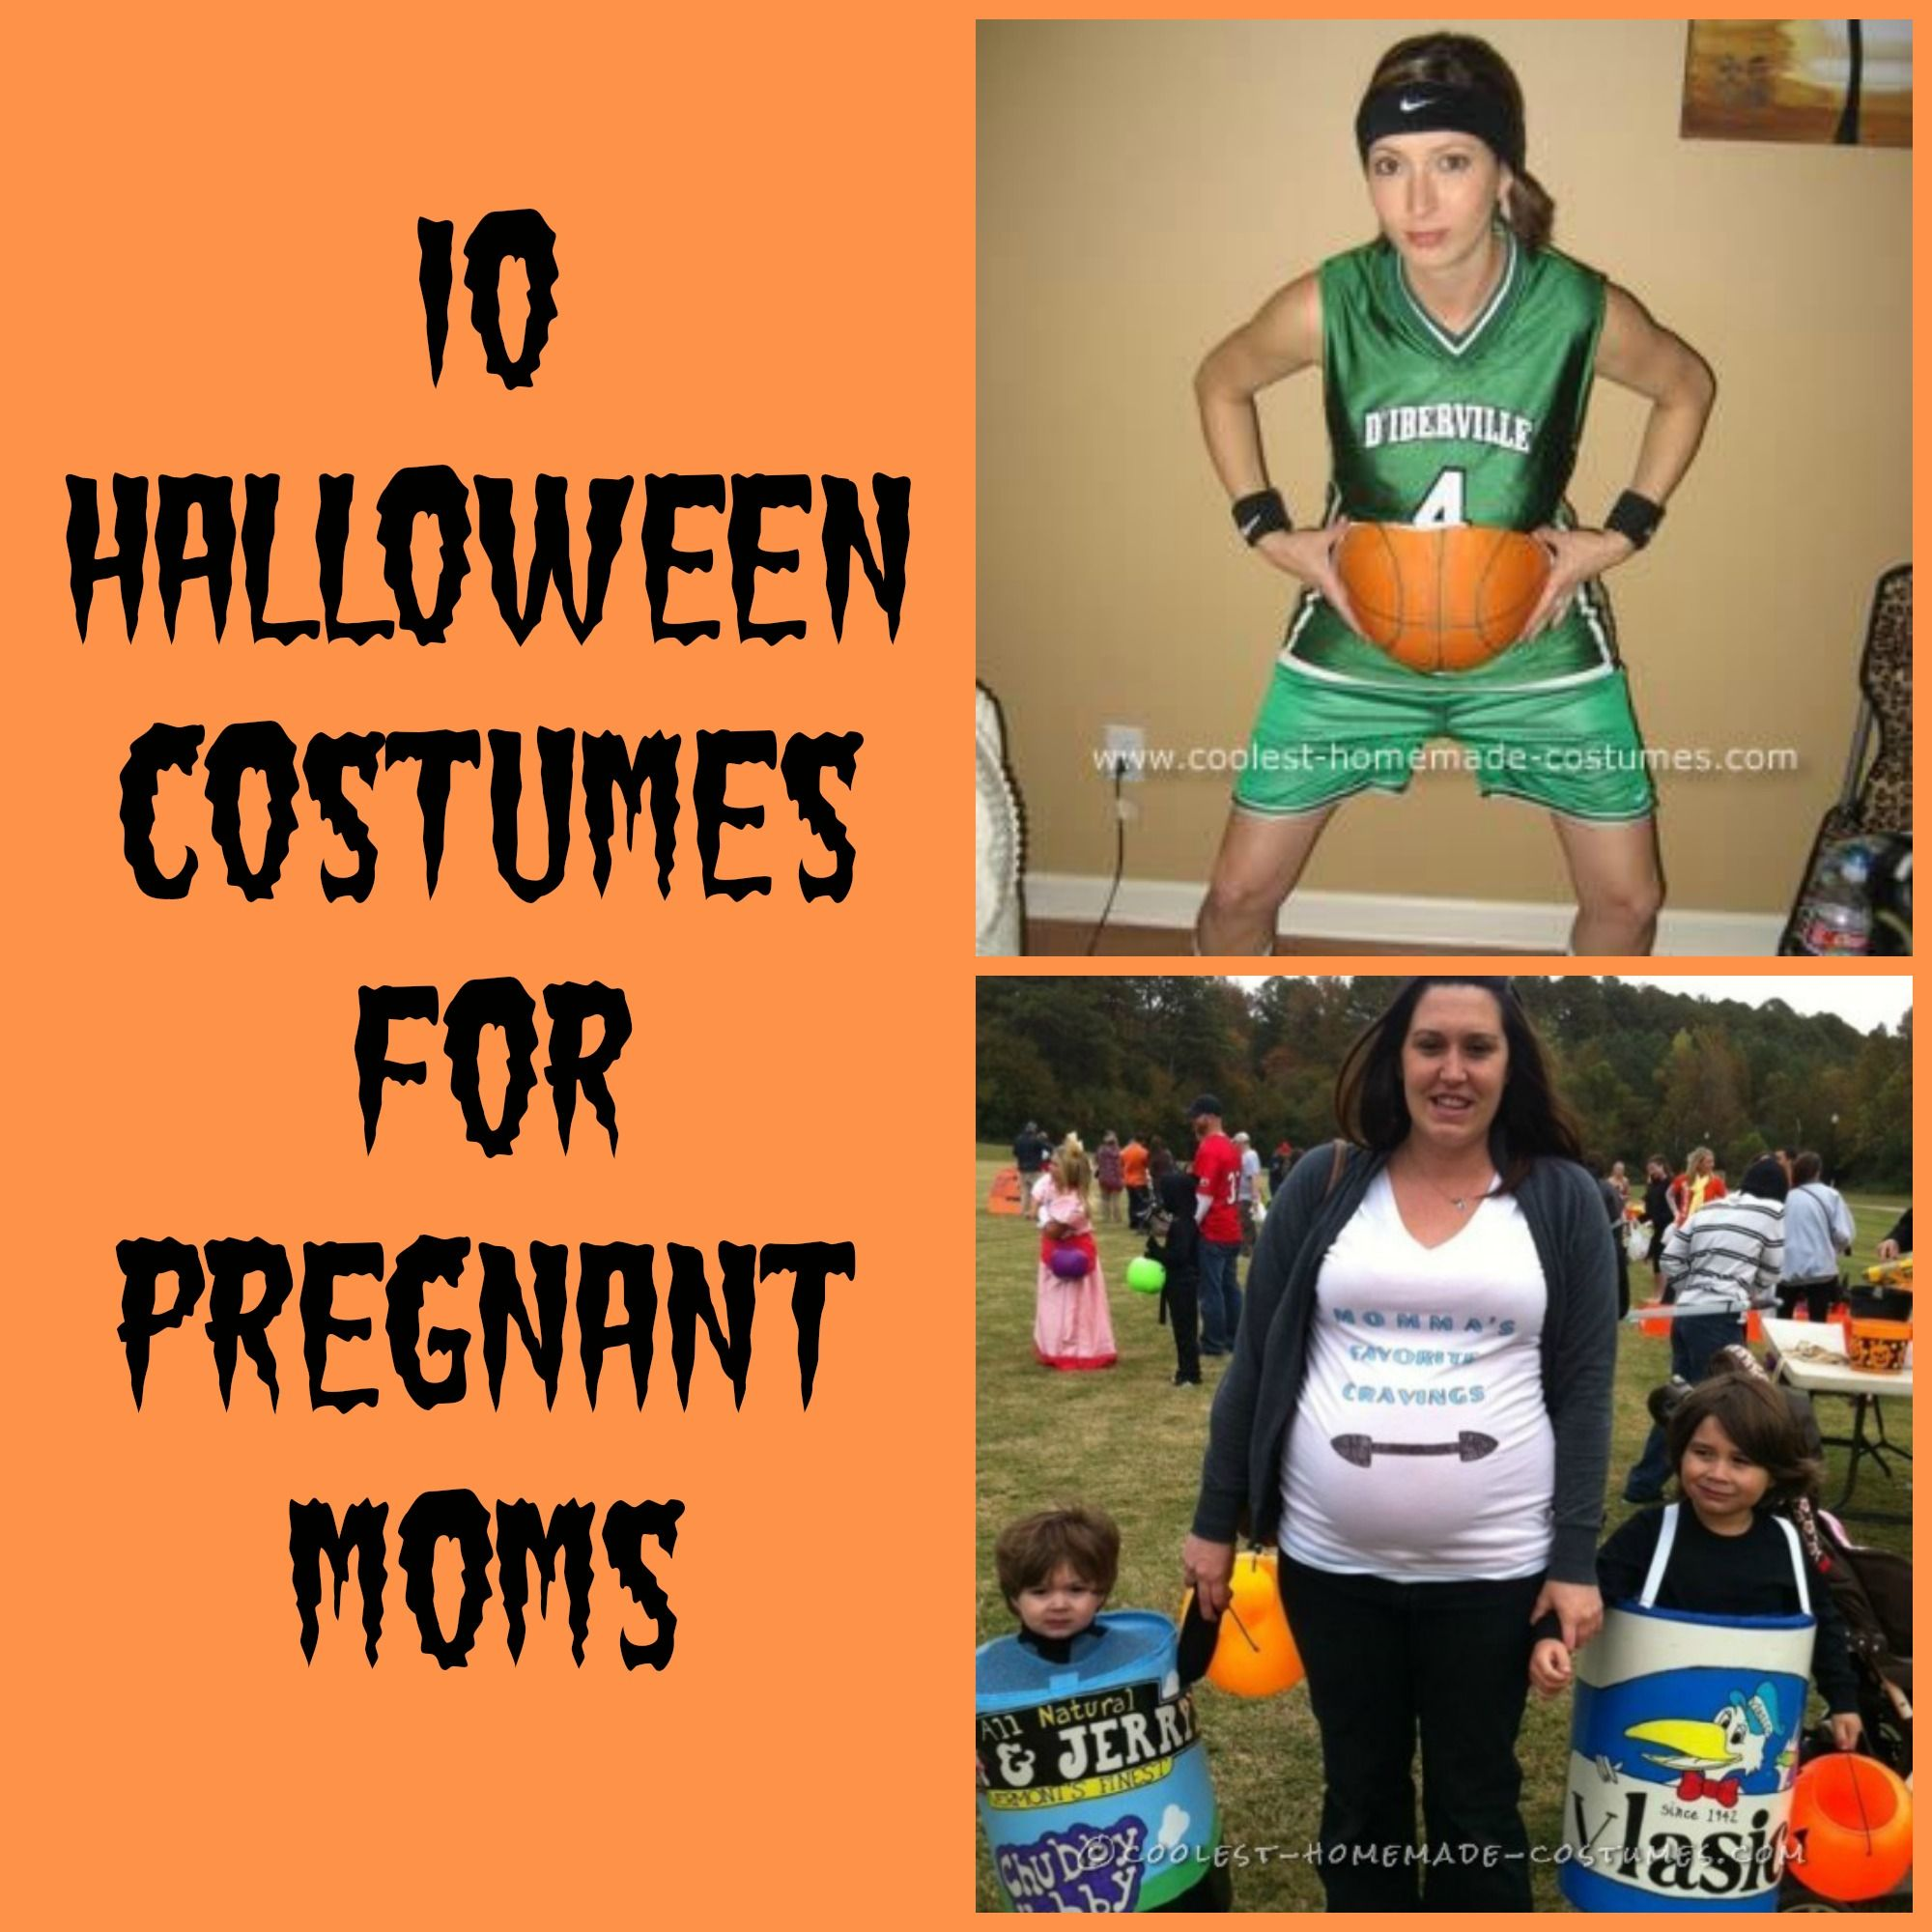 10 Fun Halloween Costumes for Pregnant Moms